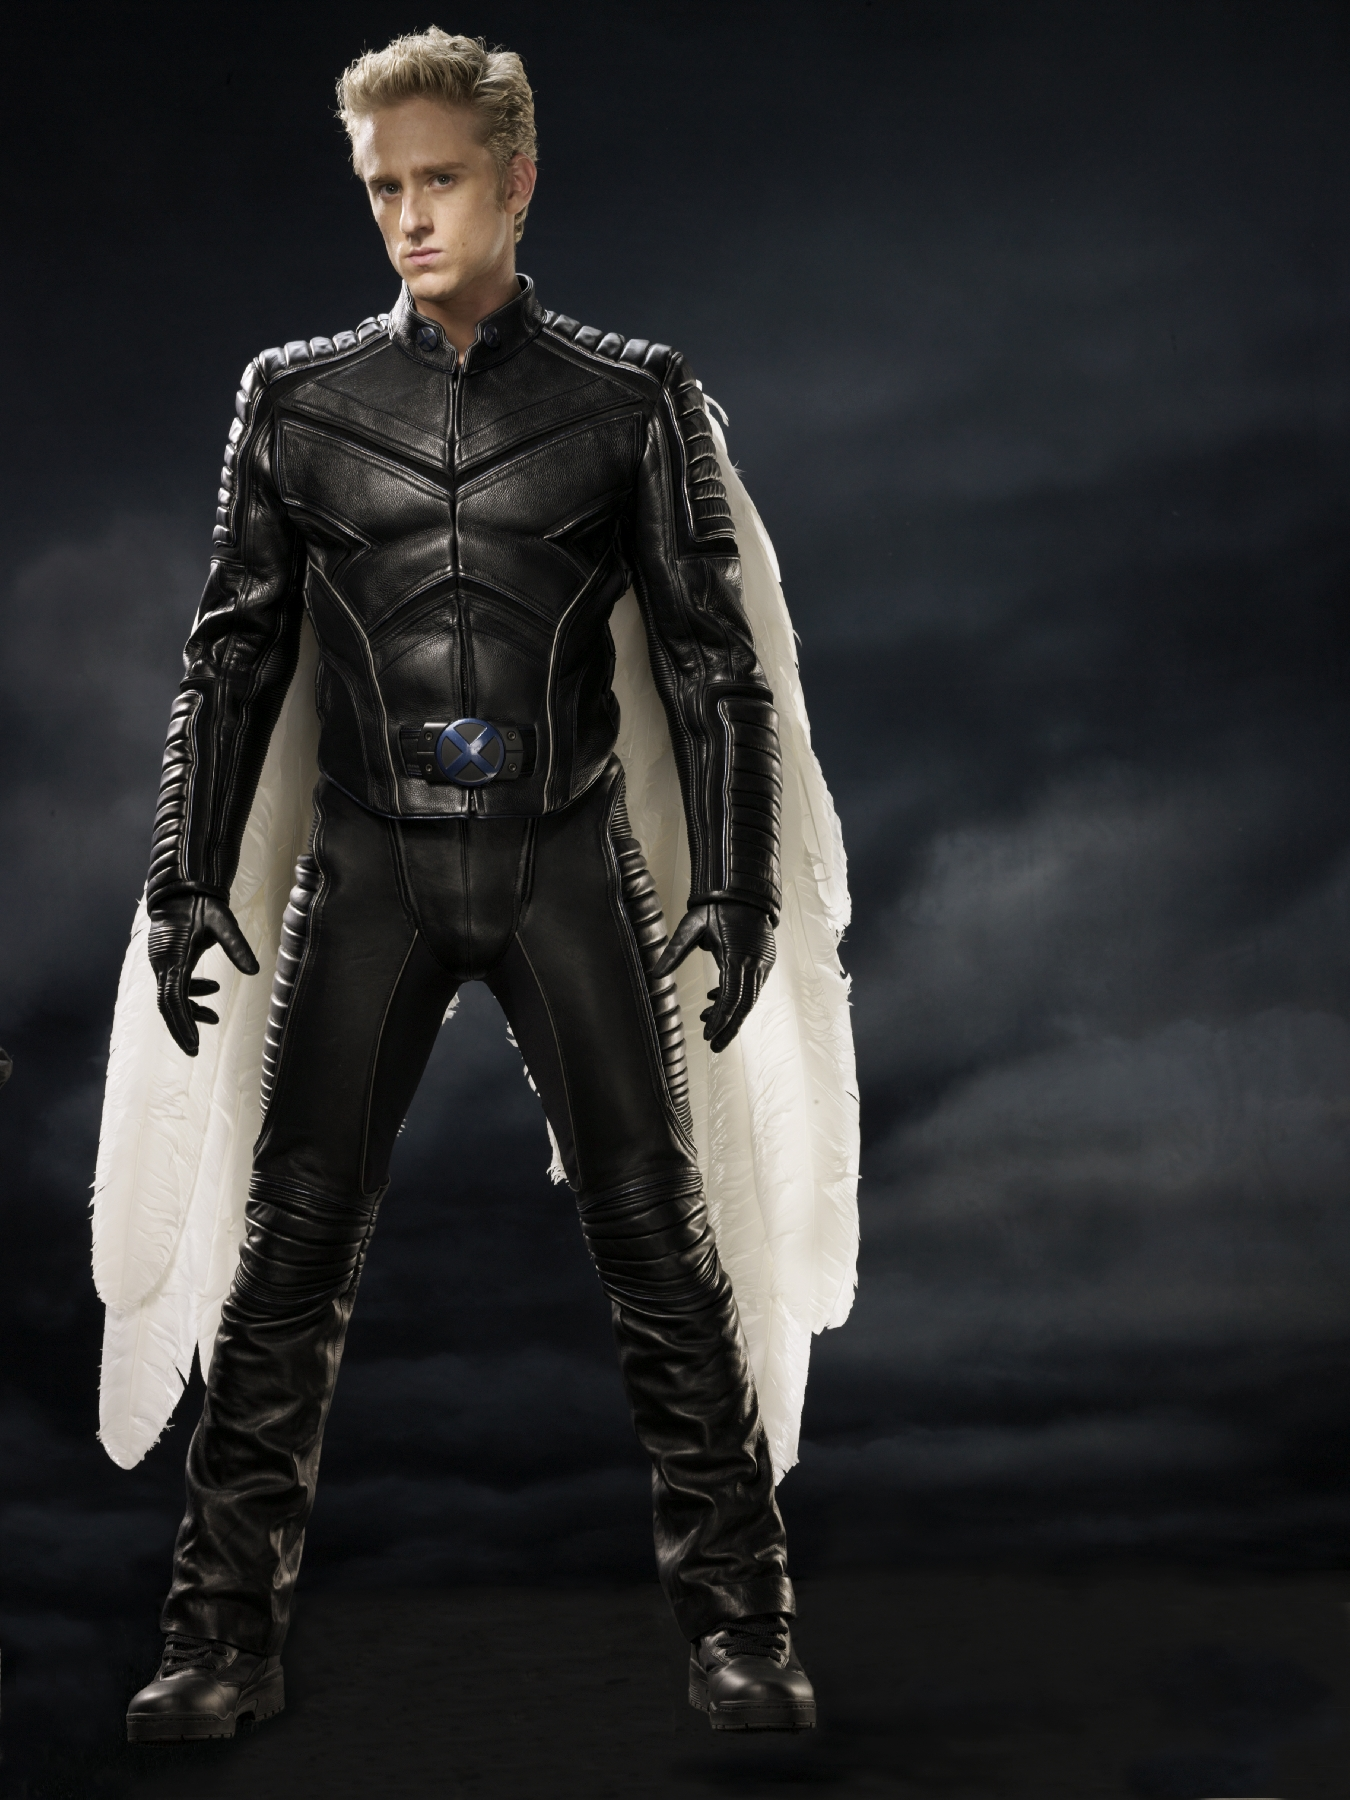 Archangel (X-Men Movies)